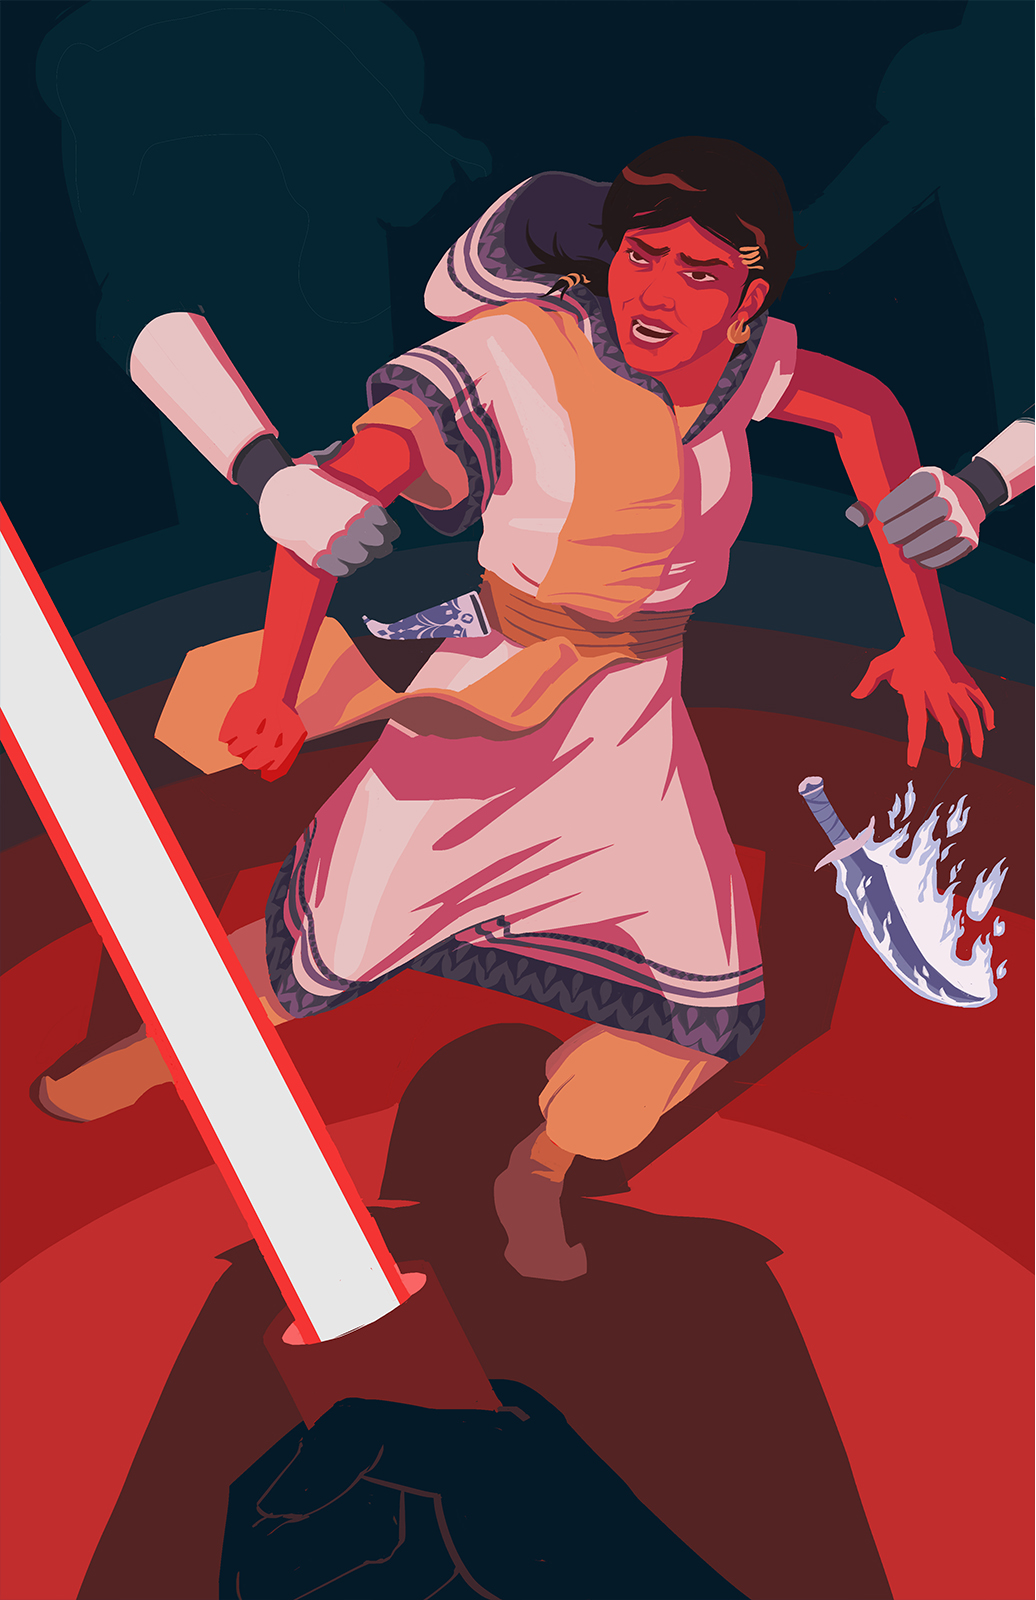 A Star Wars Leia redesign inspired by Medea of Colchis from Jason and the Argonauts (1963). Leia's clothing resembles Carrie Fisher's iconic white dress while including patterned elements from Urartan/Colchis' historical art. Leia is being detained, Vader's lightsaber and shadow are in the foreground. Stormtroopers emerge from the shadows to grab her arms.